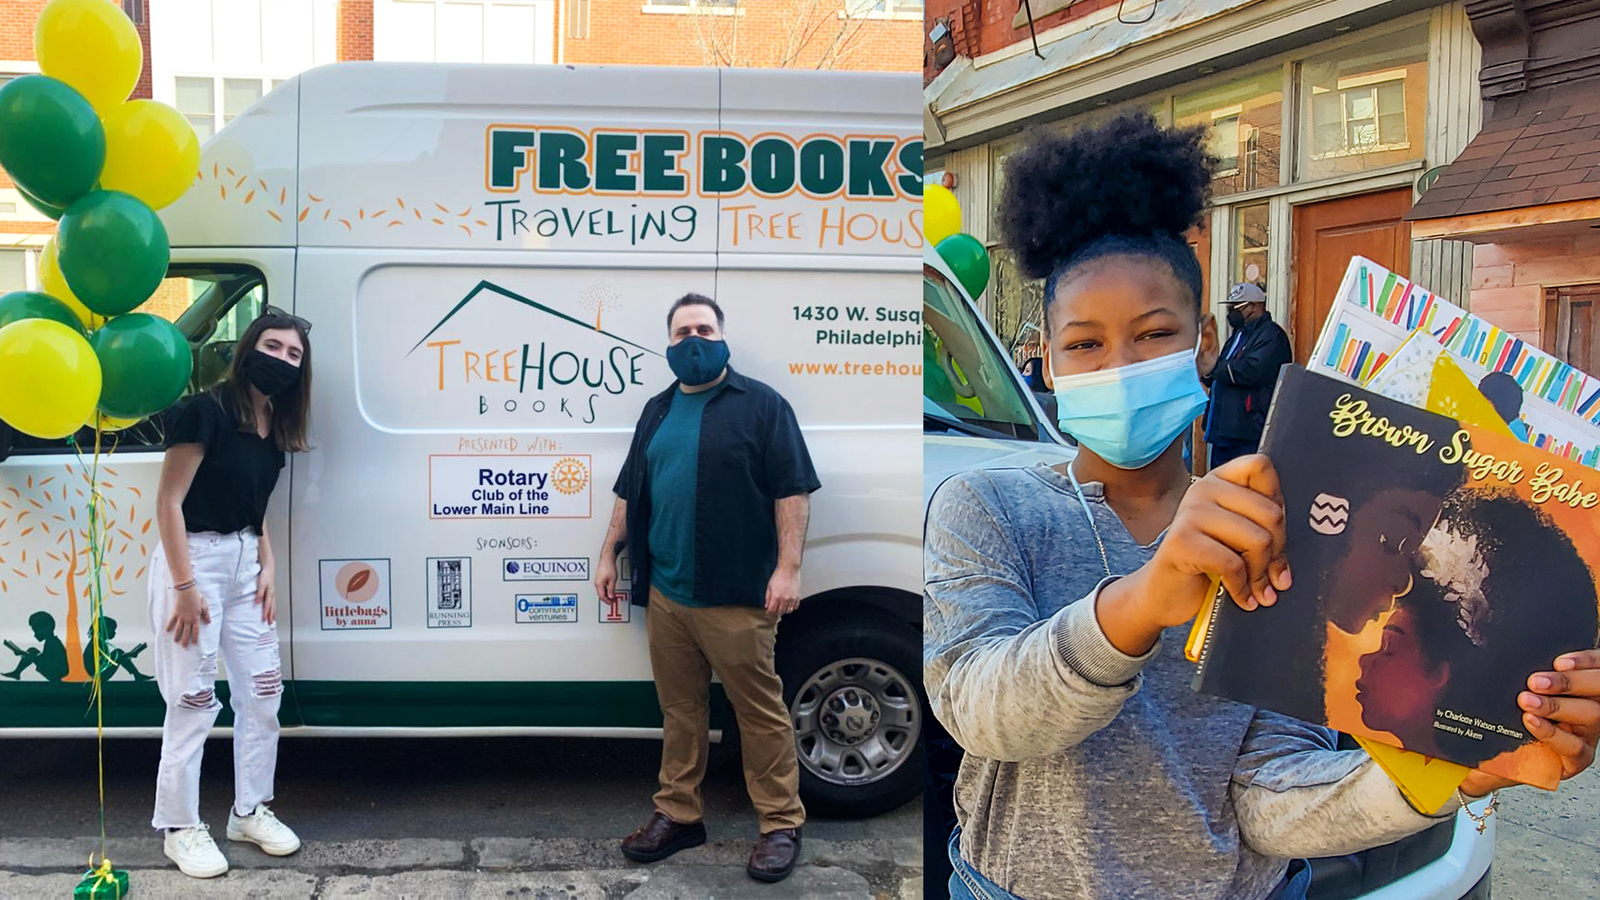 The 'Traveling Tree House' hits Philly streets with free children's books